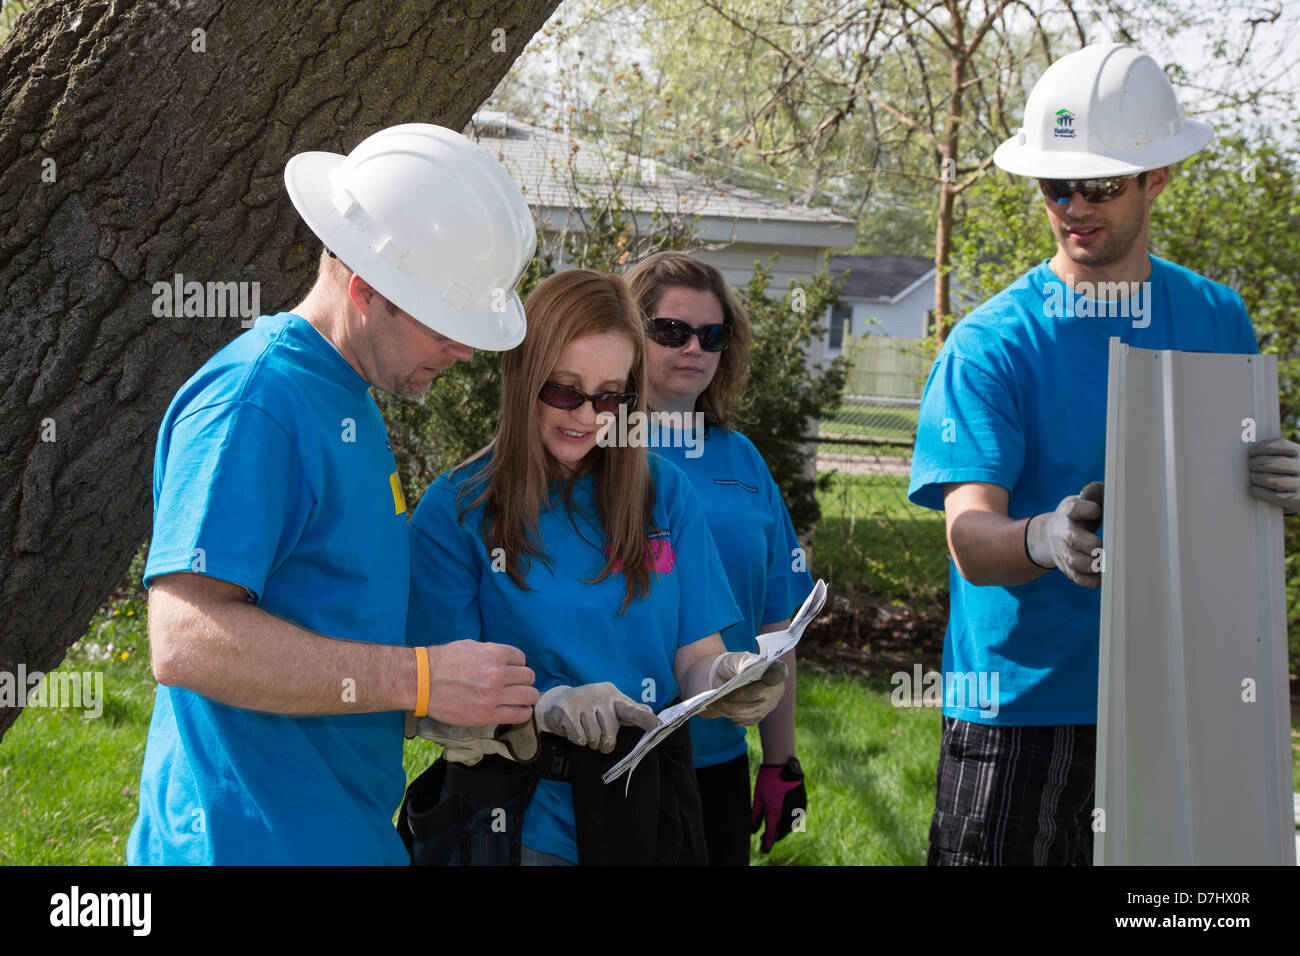 Volunteers Rehabilitate a House for Habitat for Humanity - Stock Image